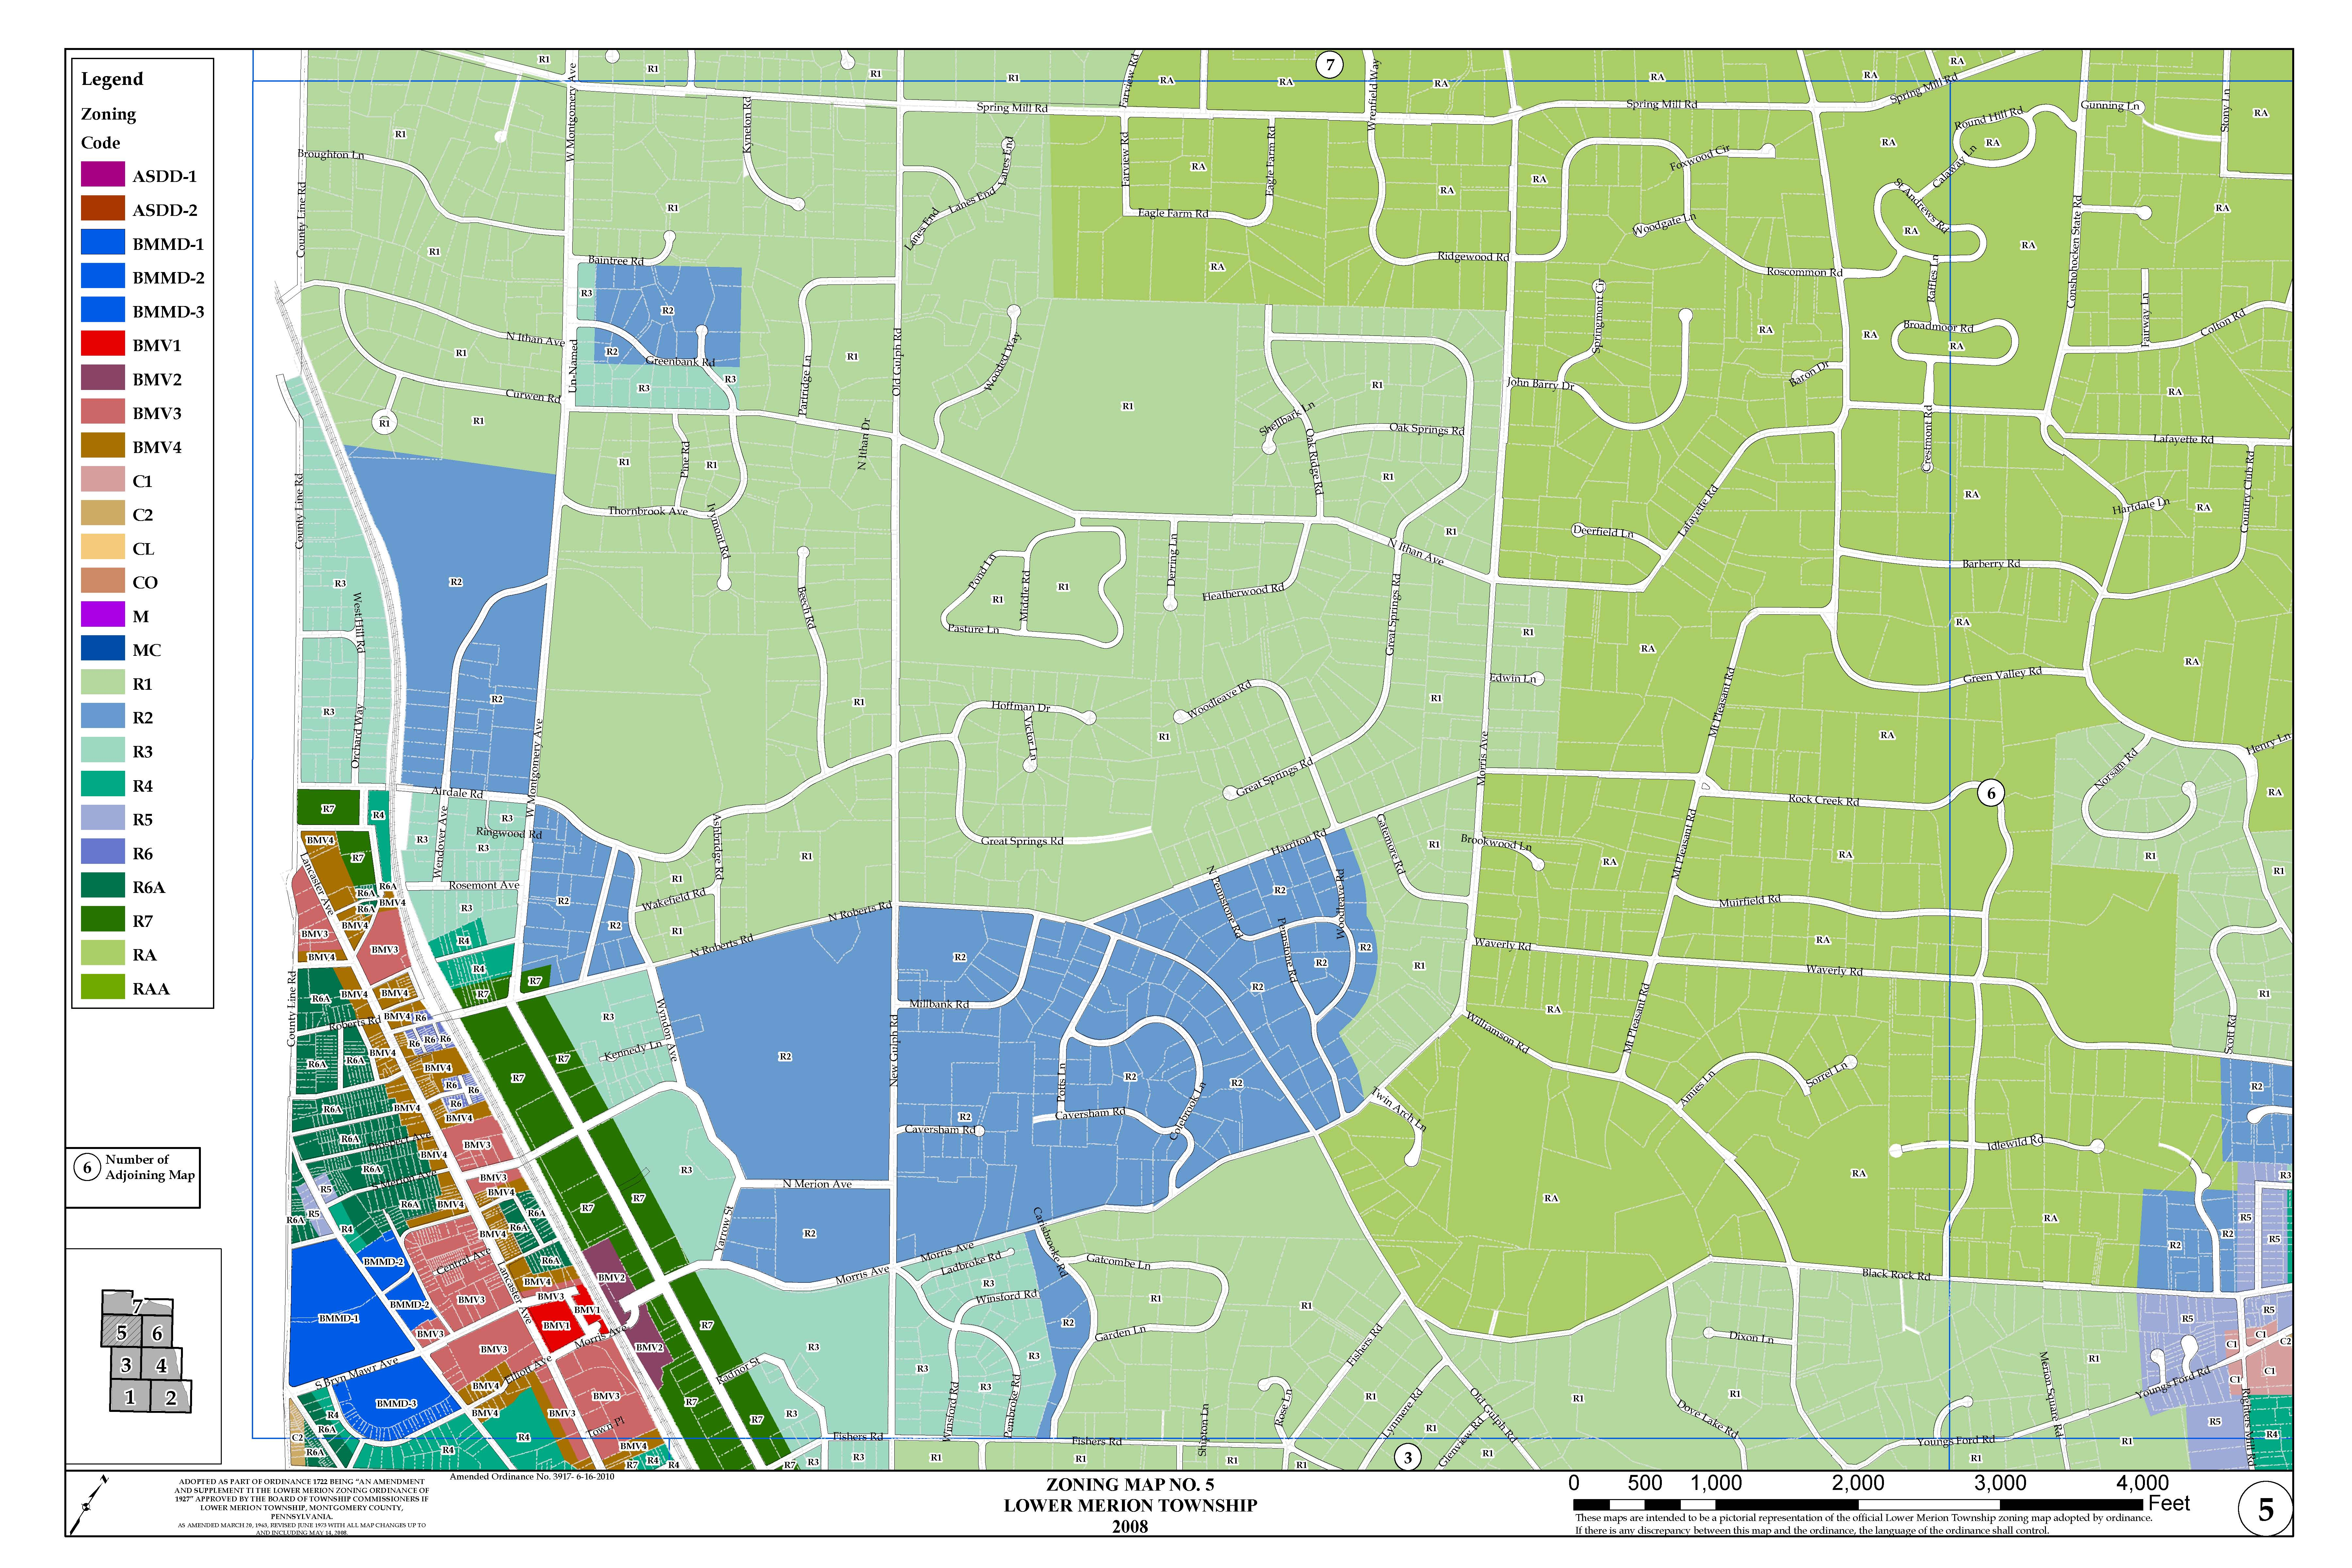 Zoning Maps | Lower Merion Township, PA on floodplain map of pa, street map of pa, address map of pa, topo map of pa, agriculture map of pa, public land map of pa, precinct map of pa, employment map of pa, construction map of pa, land use map of pa,